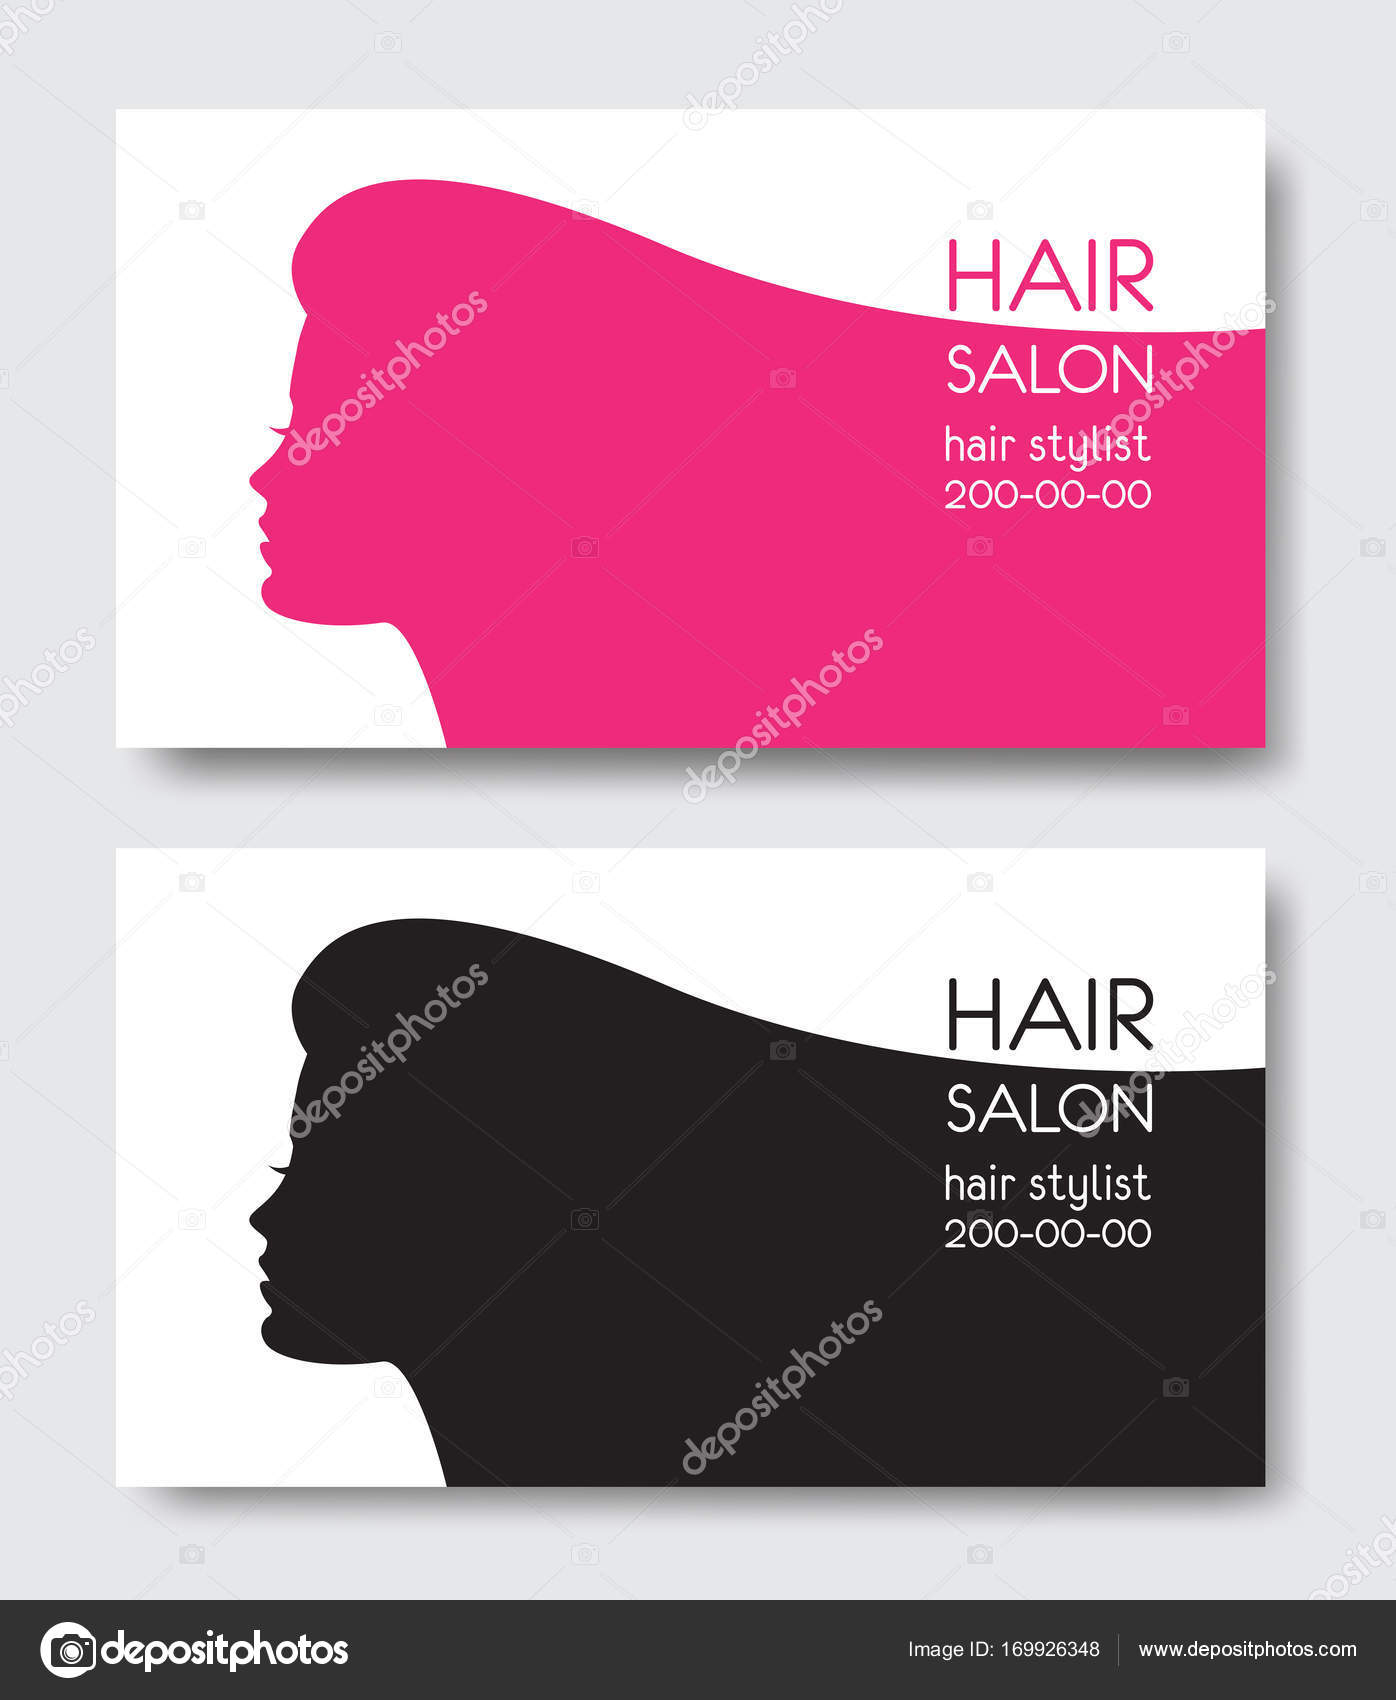 Hair salon business card templates with beautiful woman face sil hair salon business card templates with beautiful woman face sil stock vector cheaphphosting Image collections